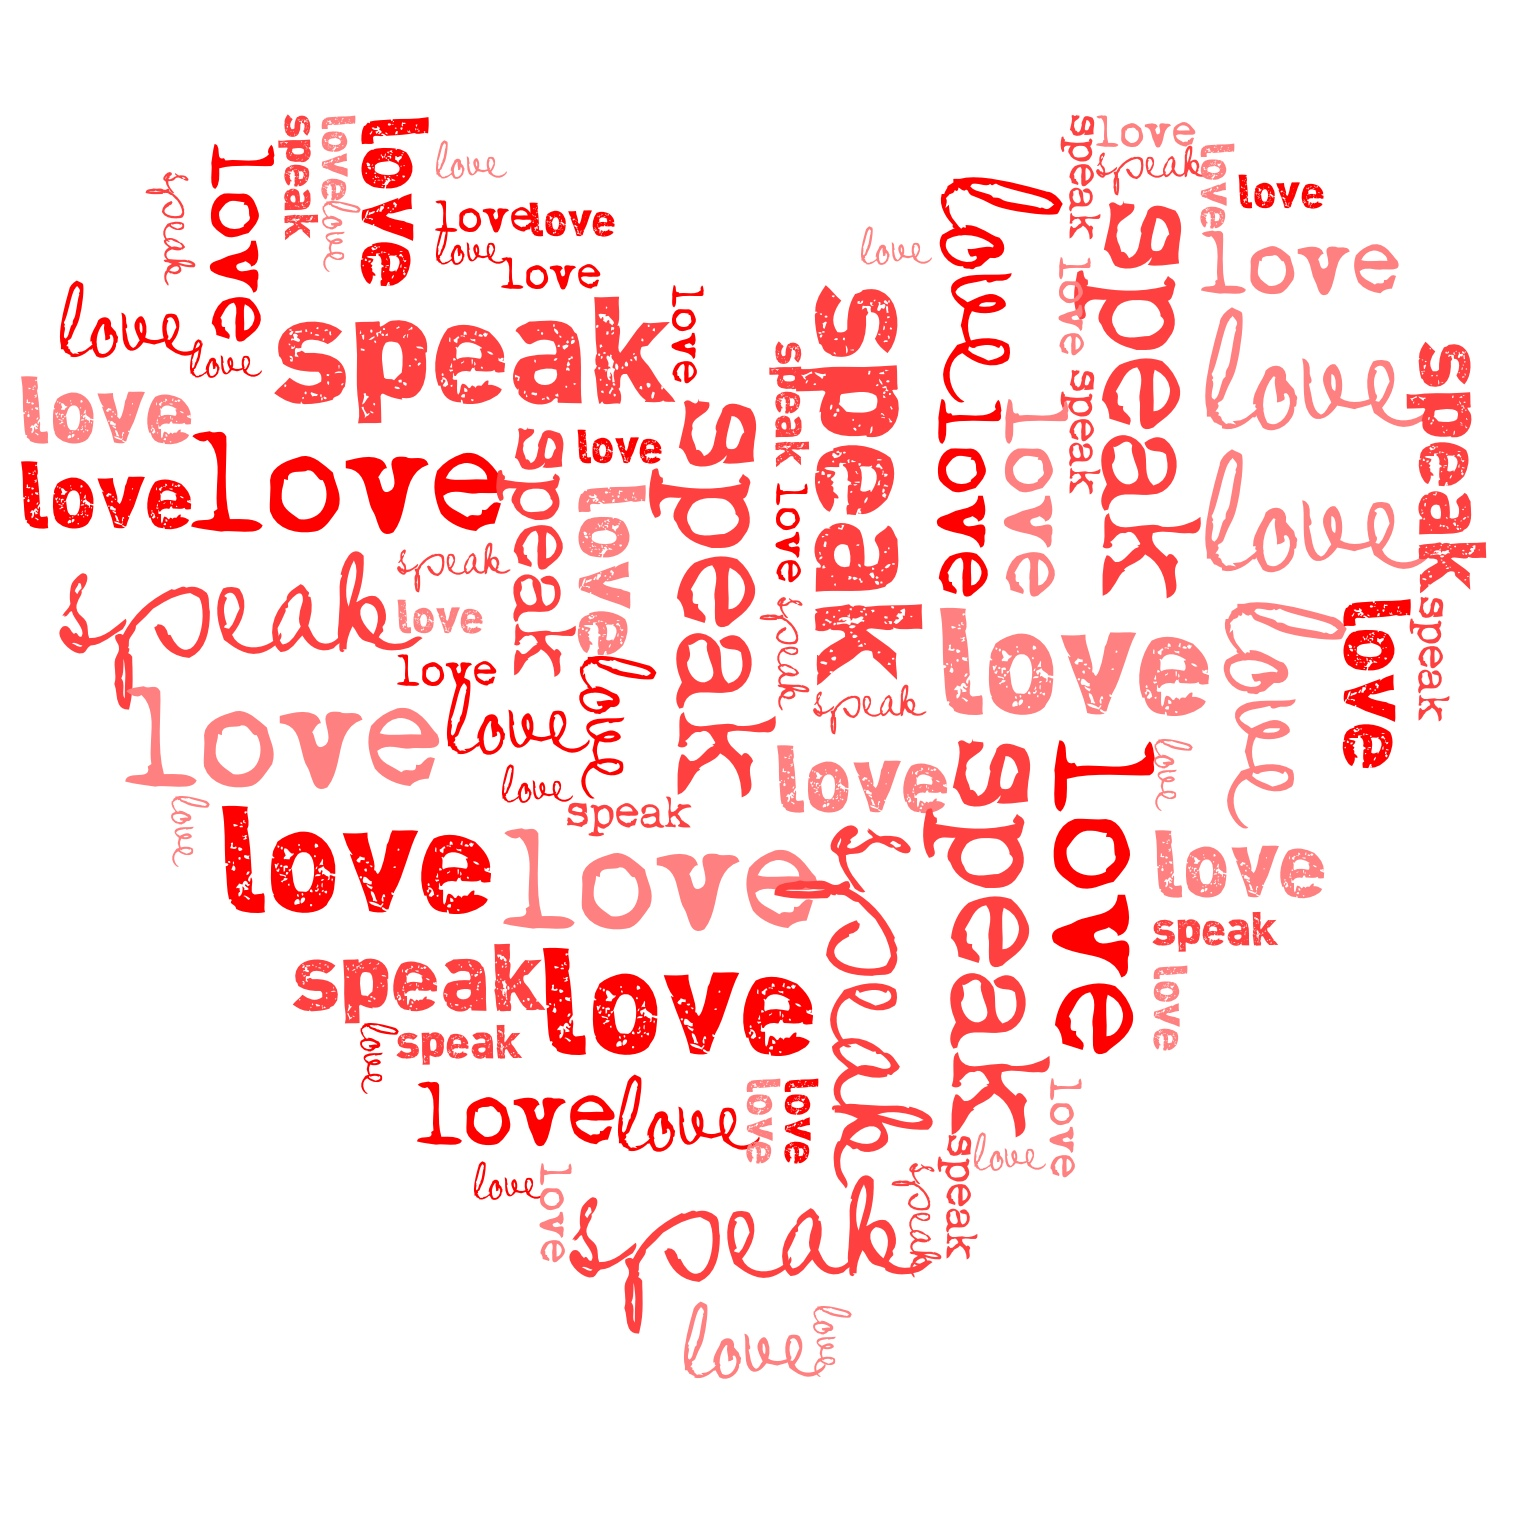 Love Each Other When Two Souls: The Five Love Languages: What Do You Speak?